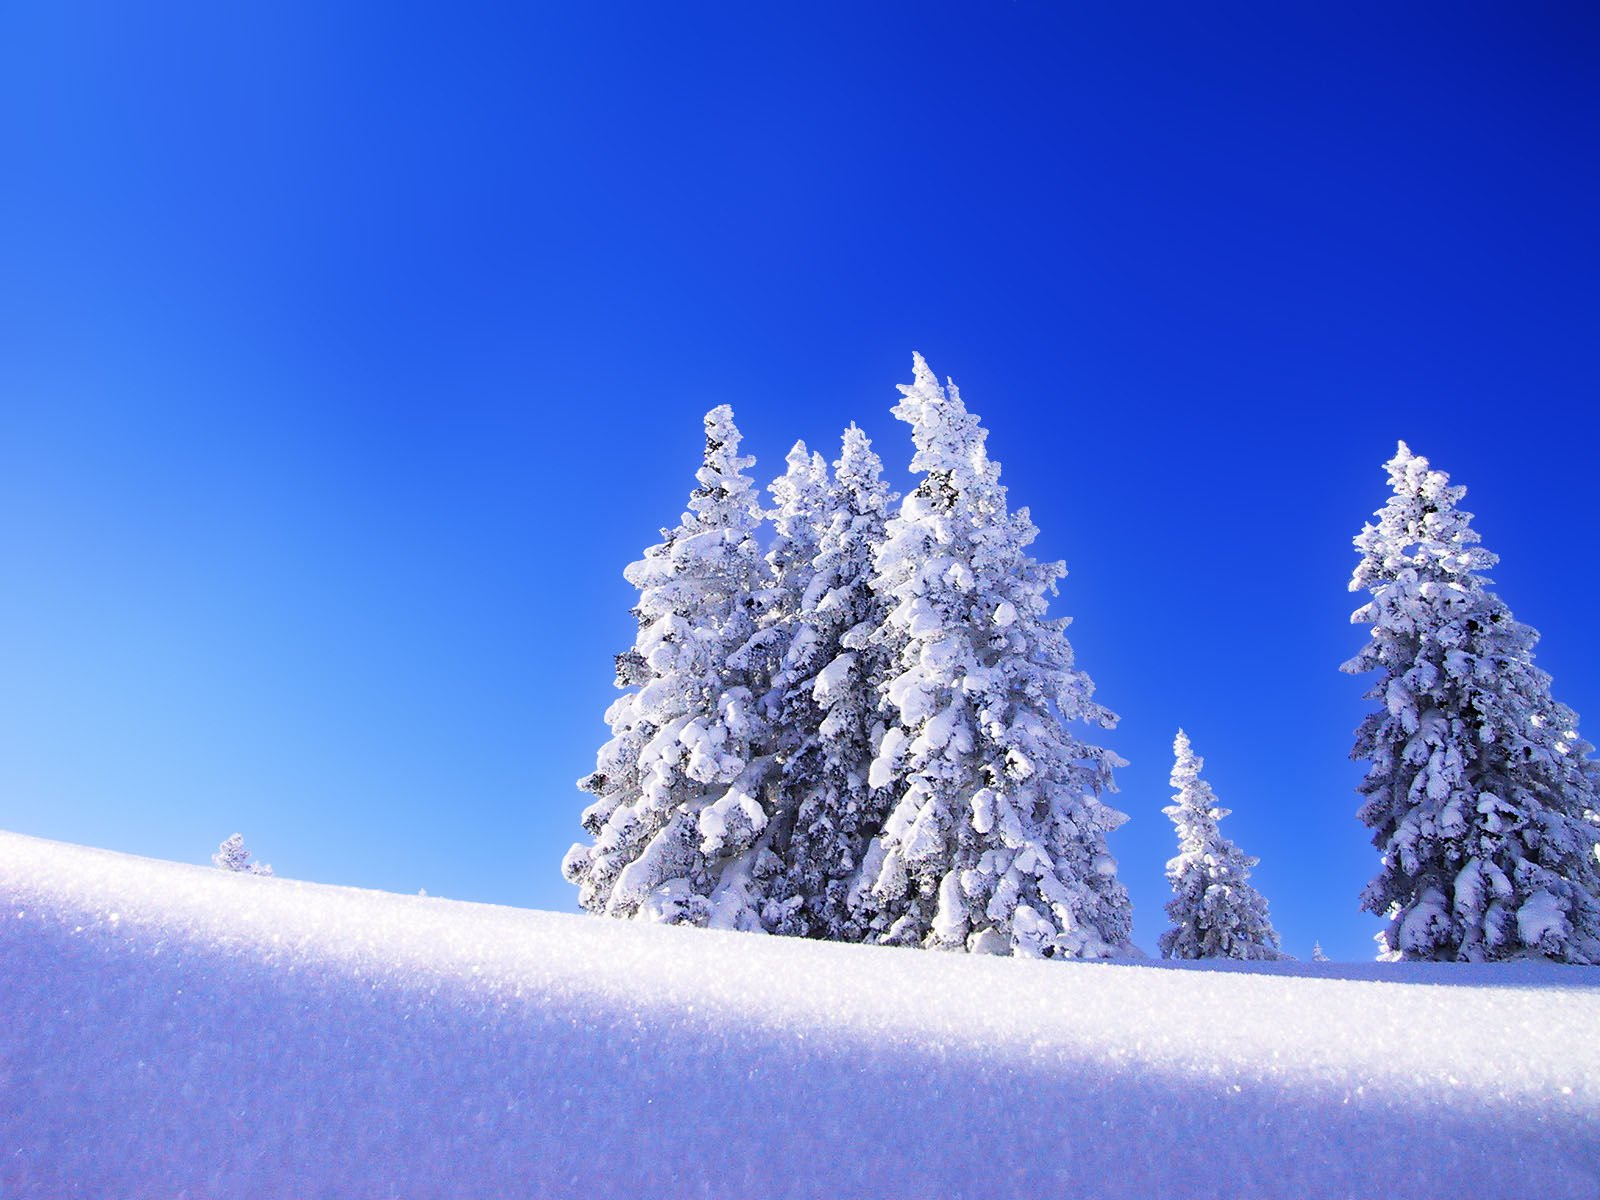 Winter Wallpaper HD For DesktopComputer Wallpaper Wallpaper 1600x1200